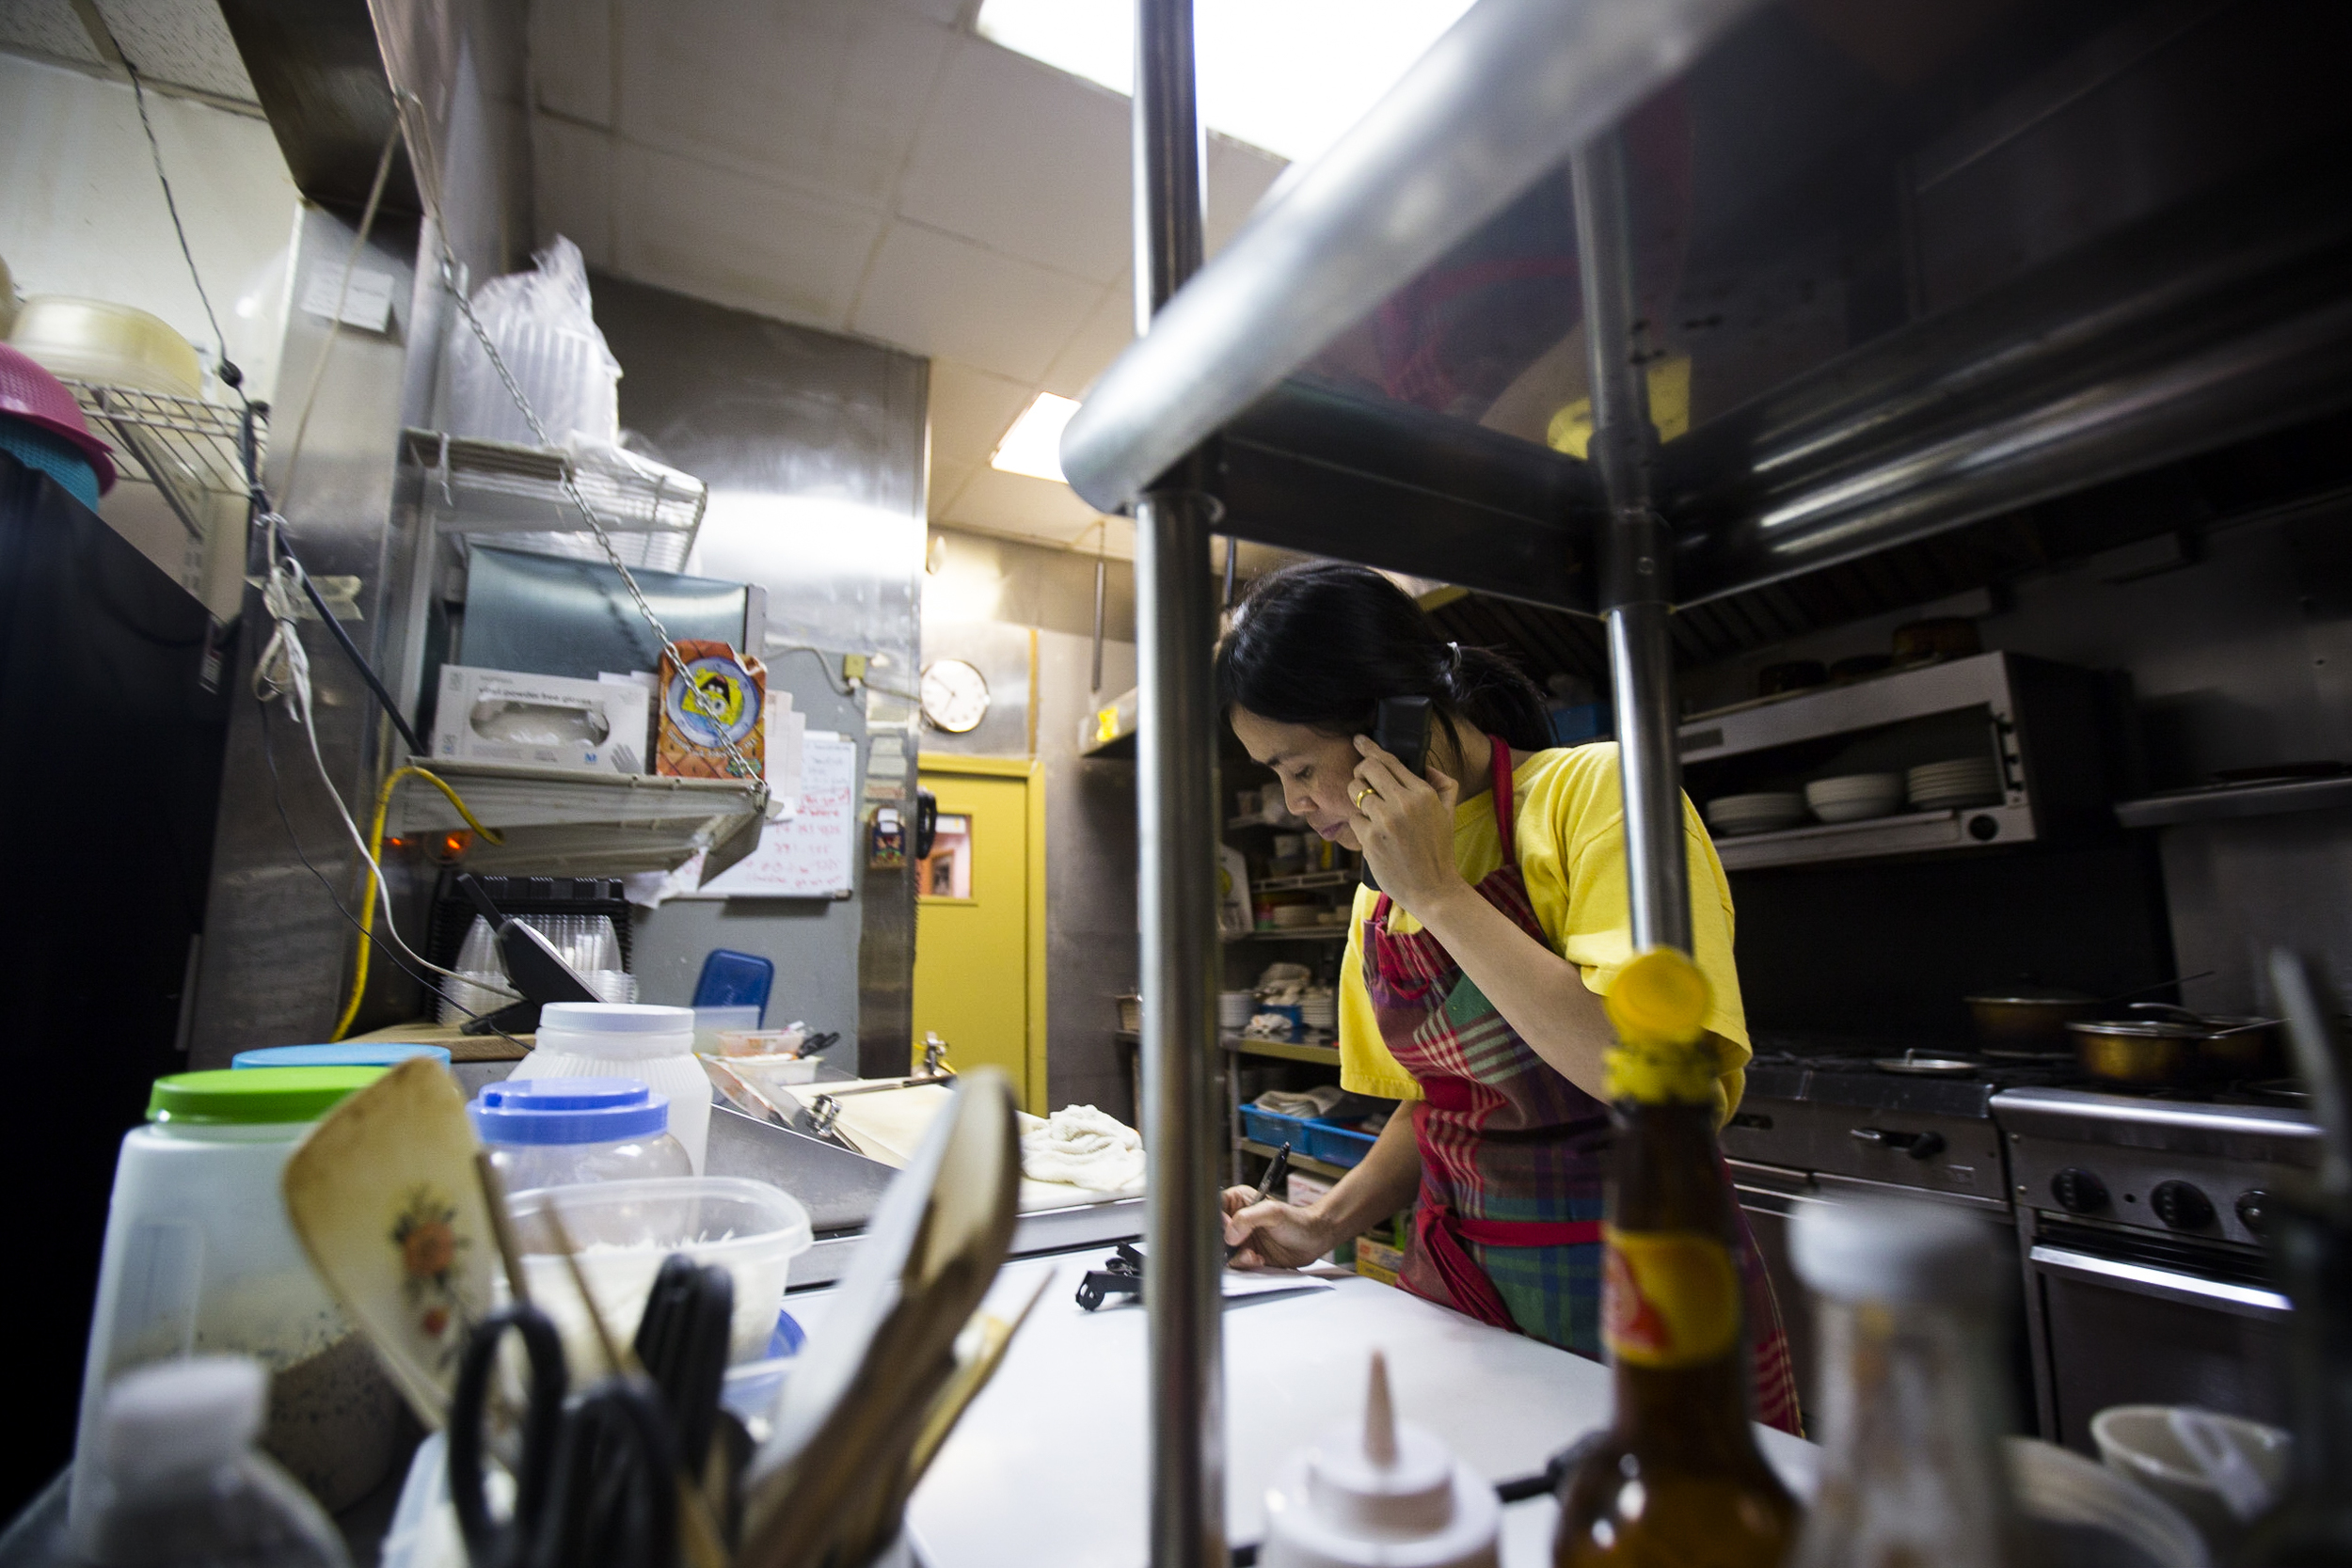 Thawdar Kway, the wife of Yoma's owner. Due to visa problems, she was separated with her husband for almost a year, waiting alone for the visa to be processes in Bangkok, Thailand. Now she helps out in kitchen of Yoma. By Ann Wang